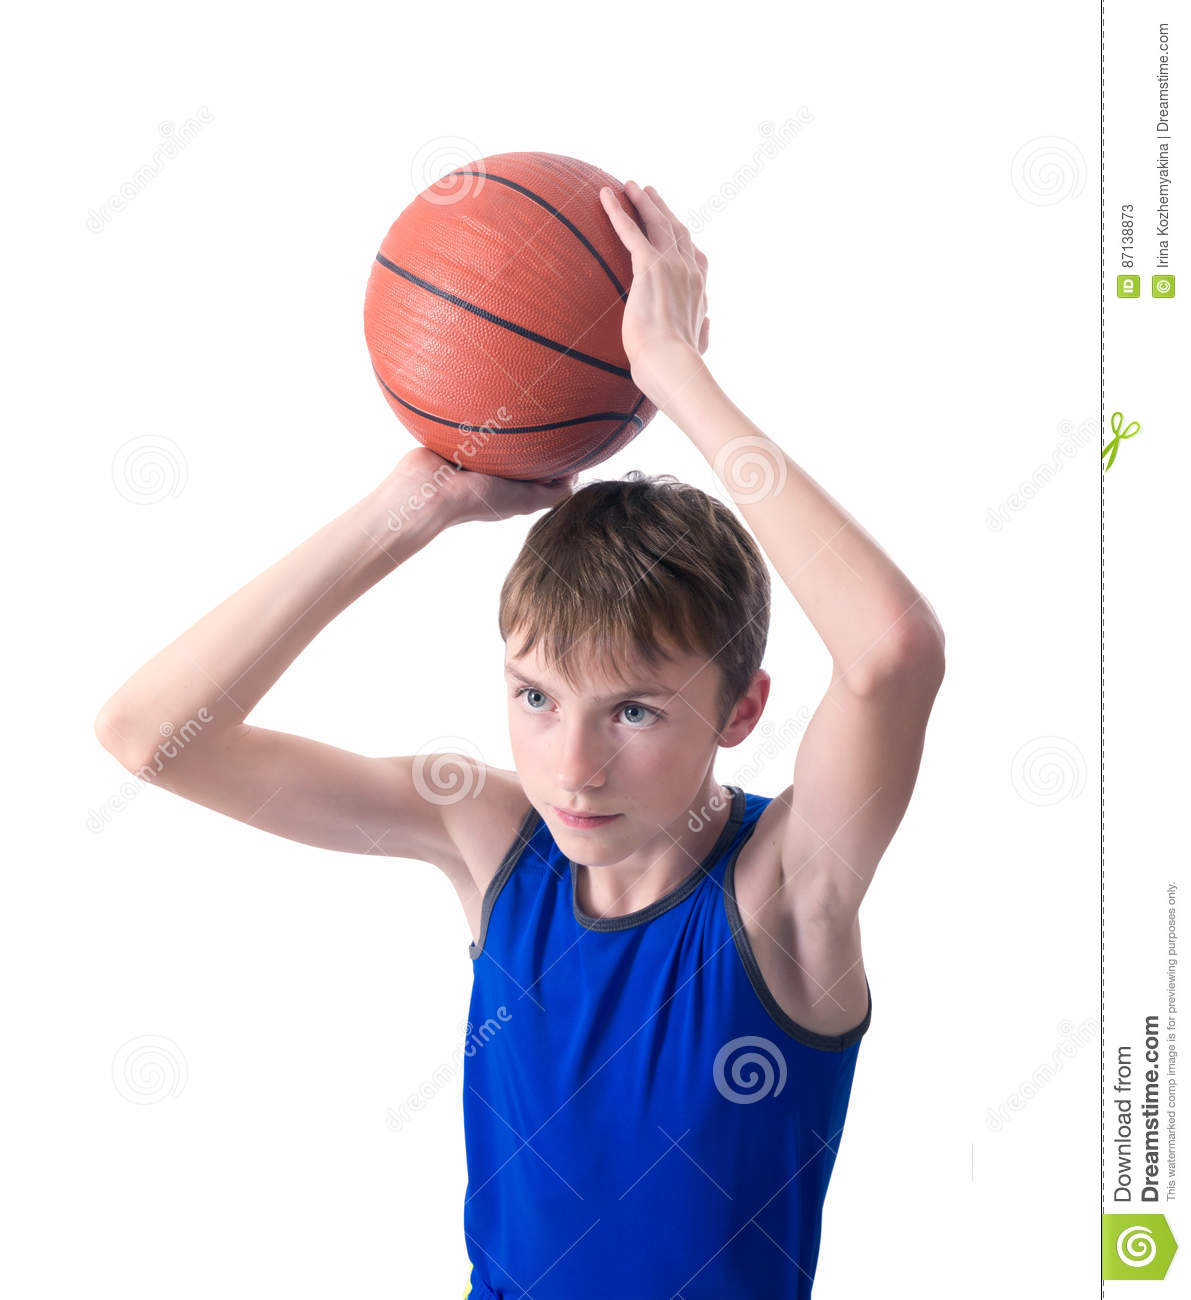 Teenager preparing to throw the ball for basketball. Isolated on white background